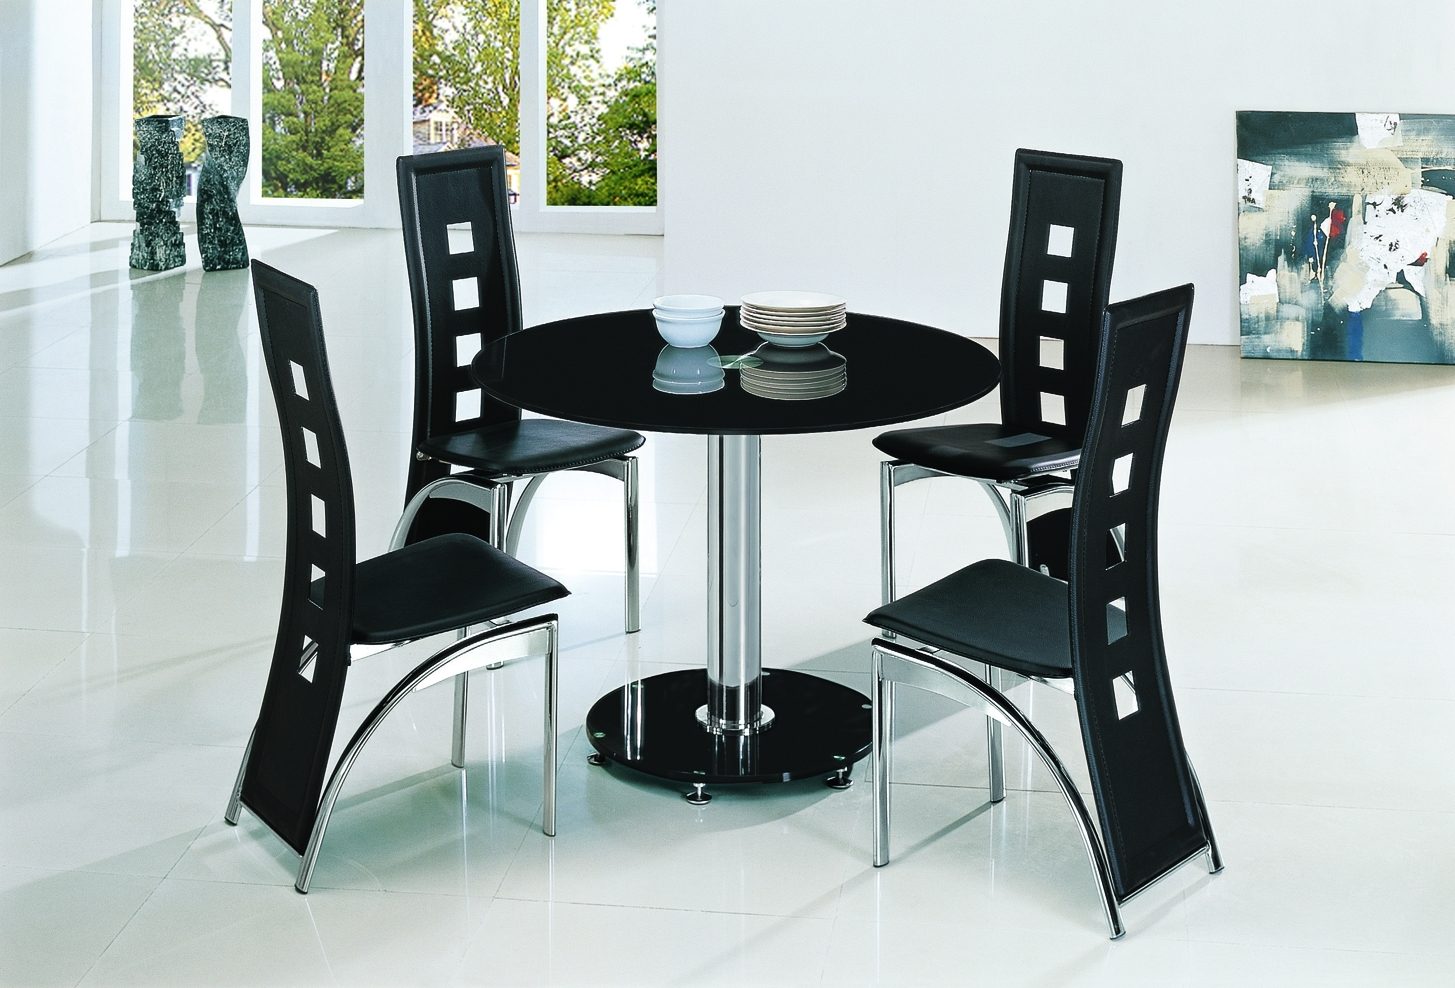 Planet Black Round Glass Dining Table With Ashley Chairs – Implex Inside Well Known Black Glass Dining Tables (View 14 of 25)